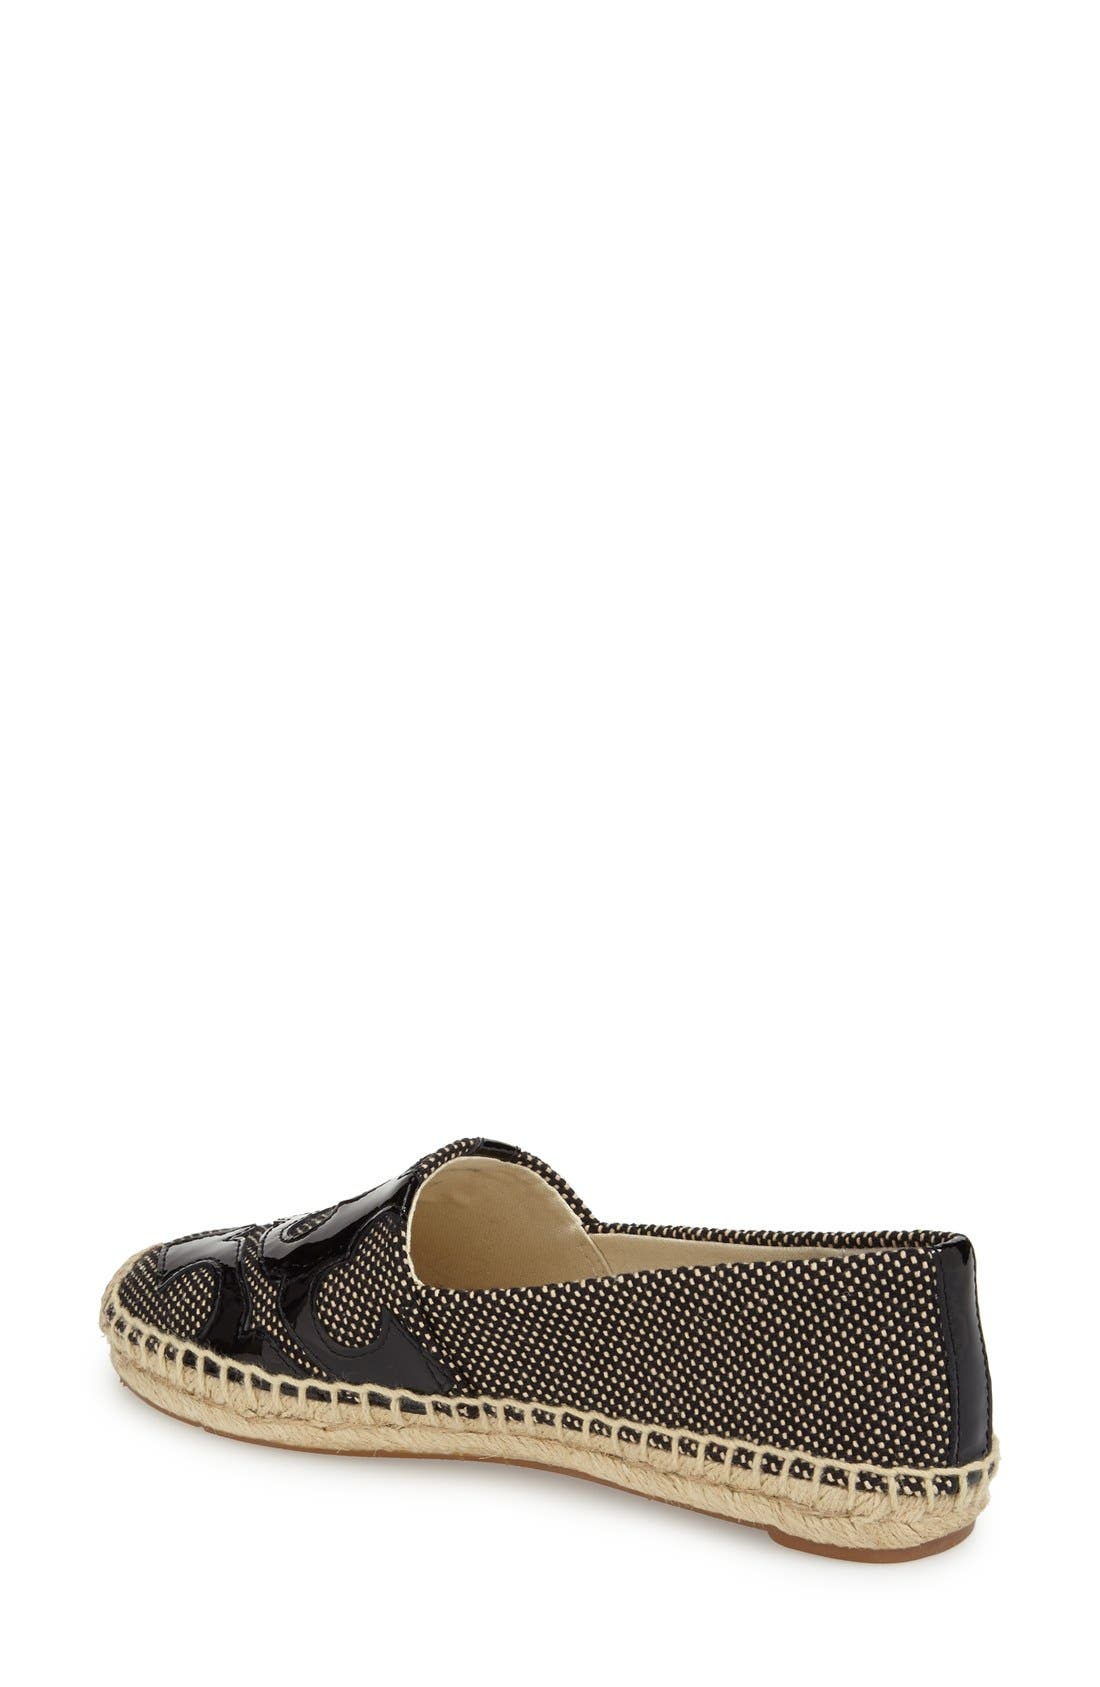 Alternate Image 2  - Tory Burch 'Lonnie' Espadrille Flat (Women)